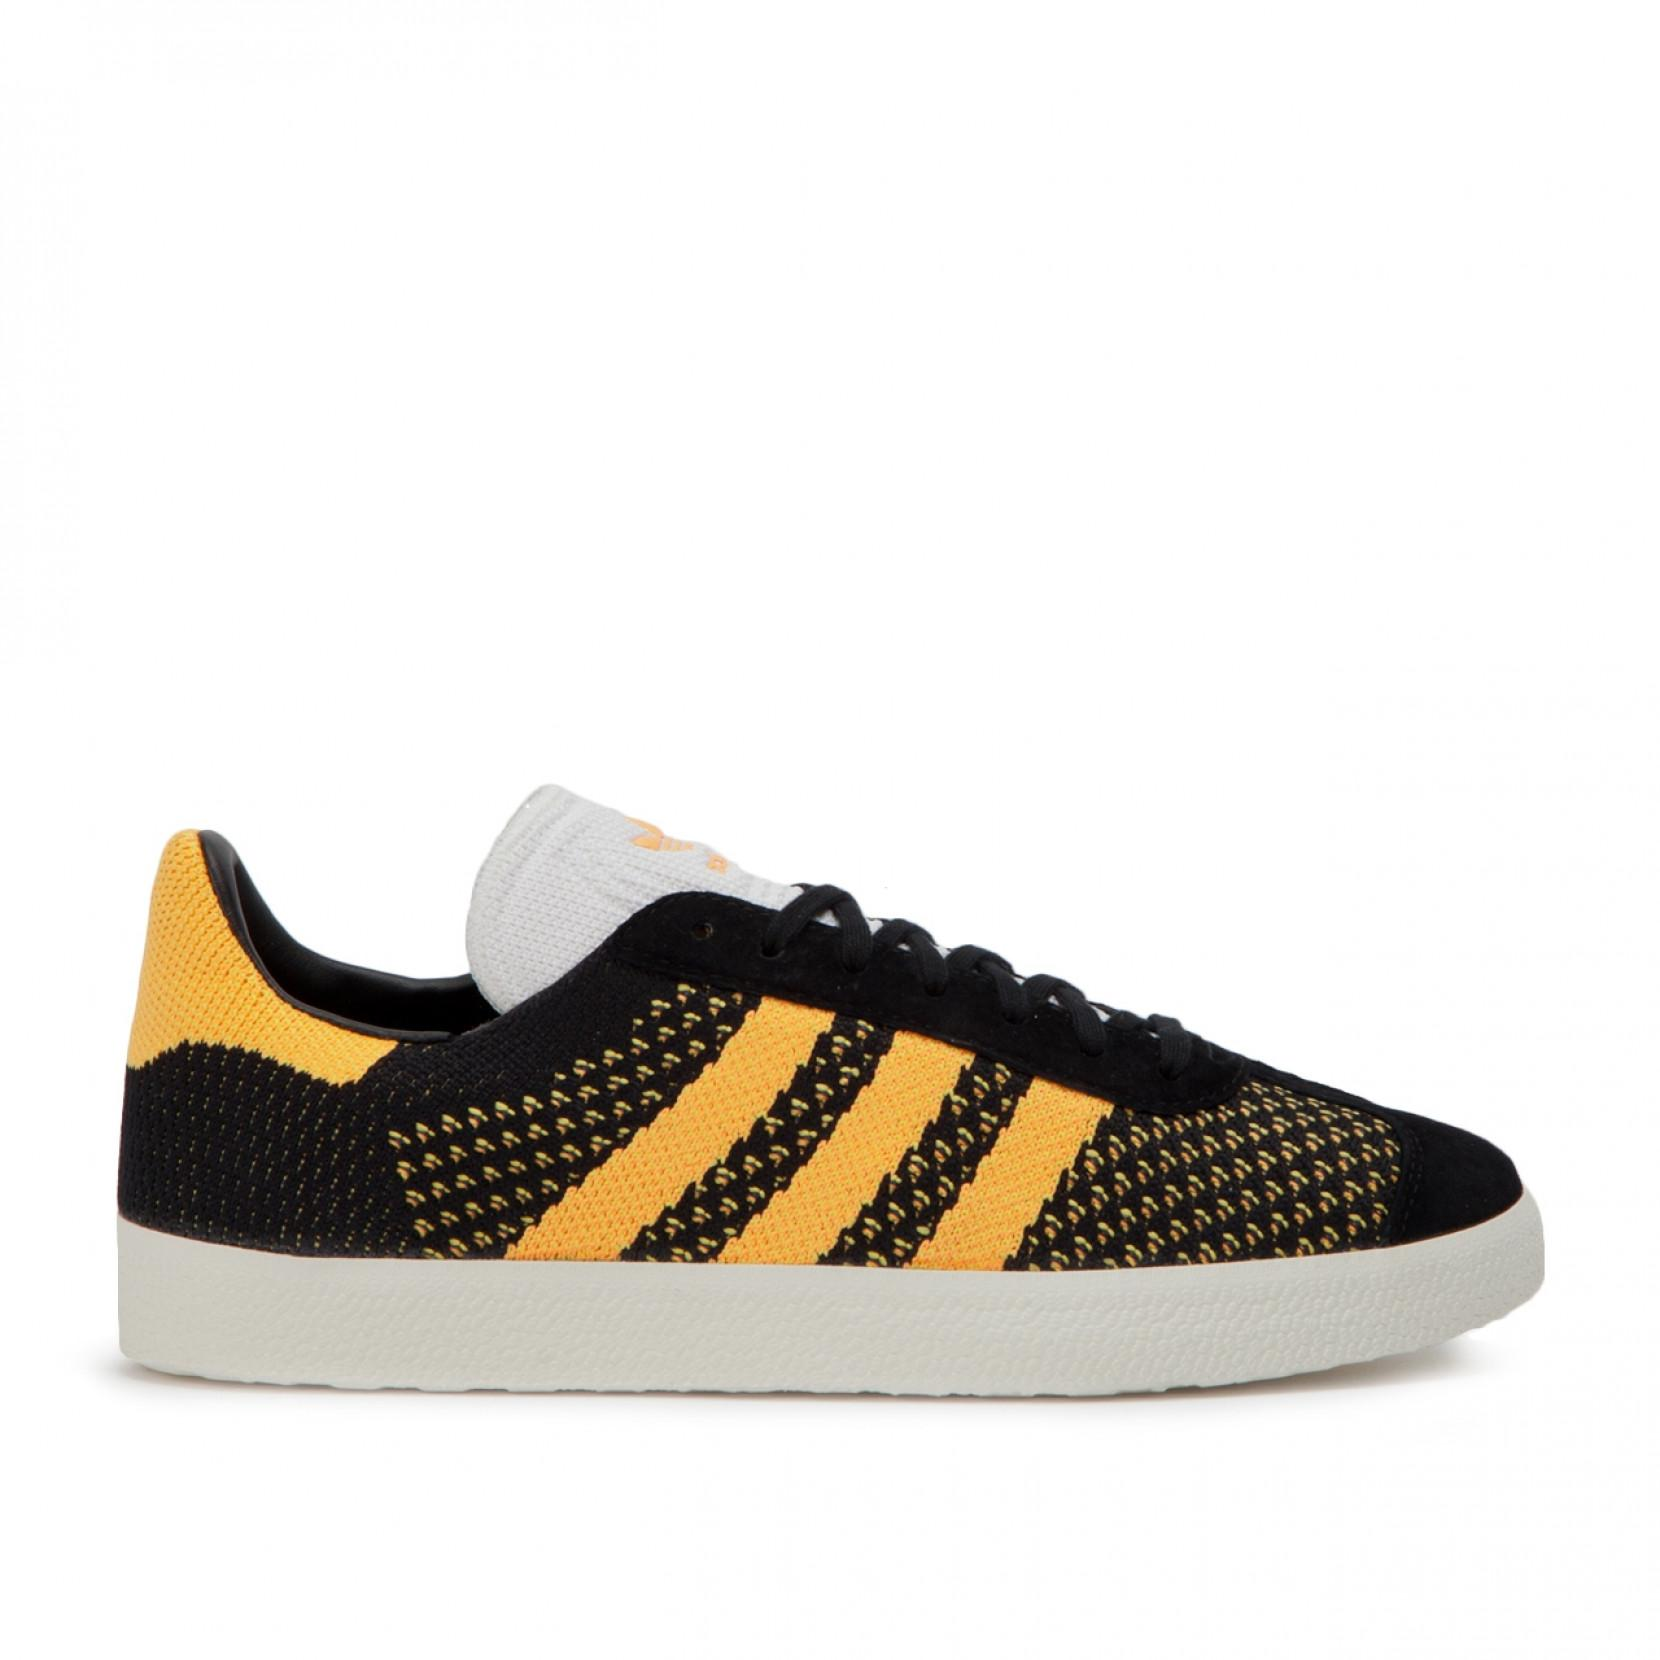 adidas Suede Gazelle Pk Fitness Shoes in Black for Men - Lyst